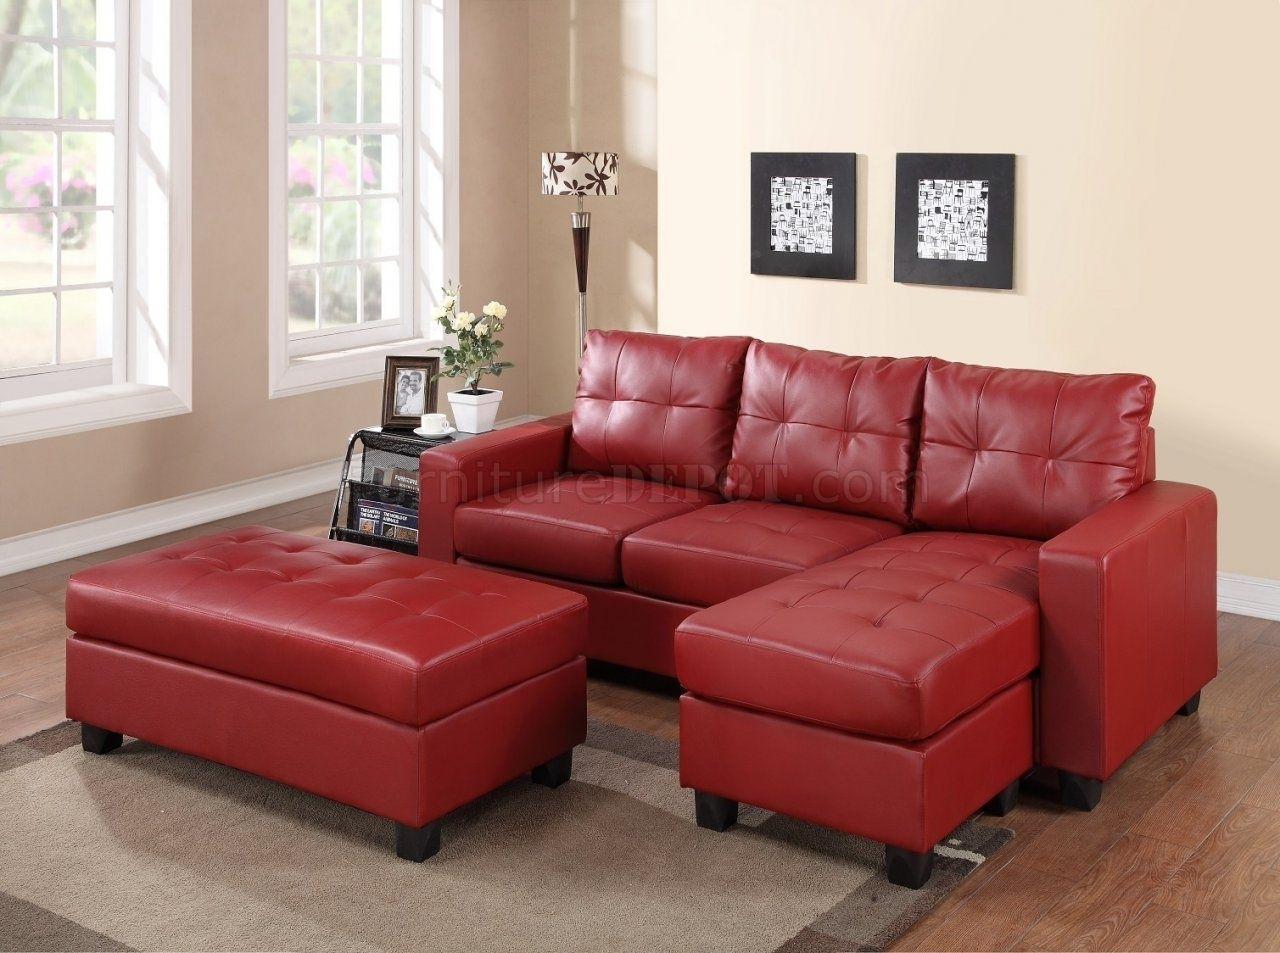 Awesome Sectional Sofa Set In Red Bonded Leather Match Pu Pict For Inside Red Sectional Sofas With Ottoman (View 11 of 15)